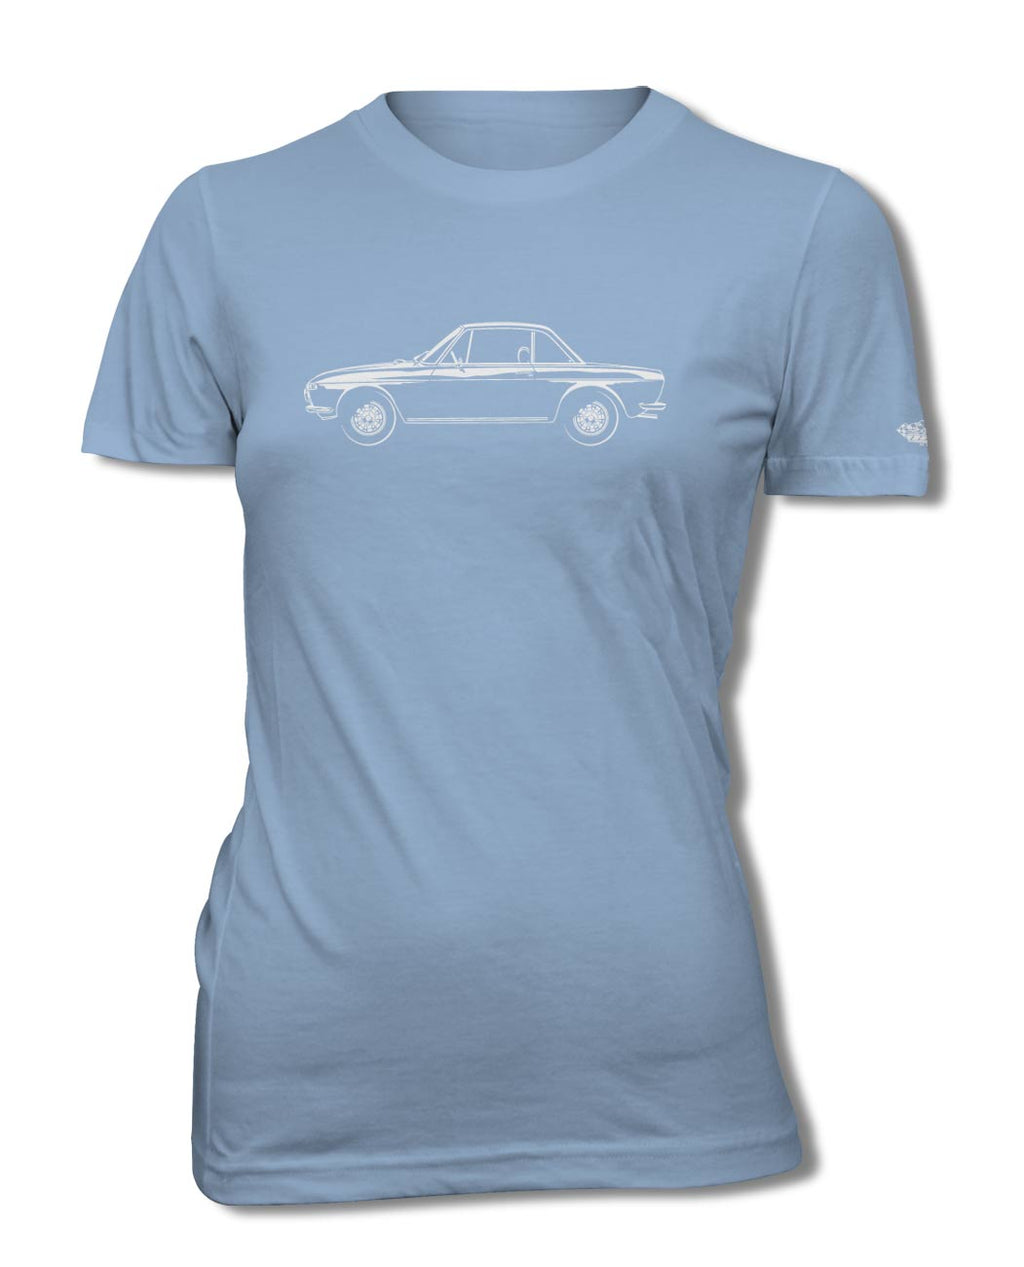 Lancia Fulvia Coupe Series I T-Shirt - Women - Side View